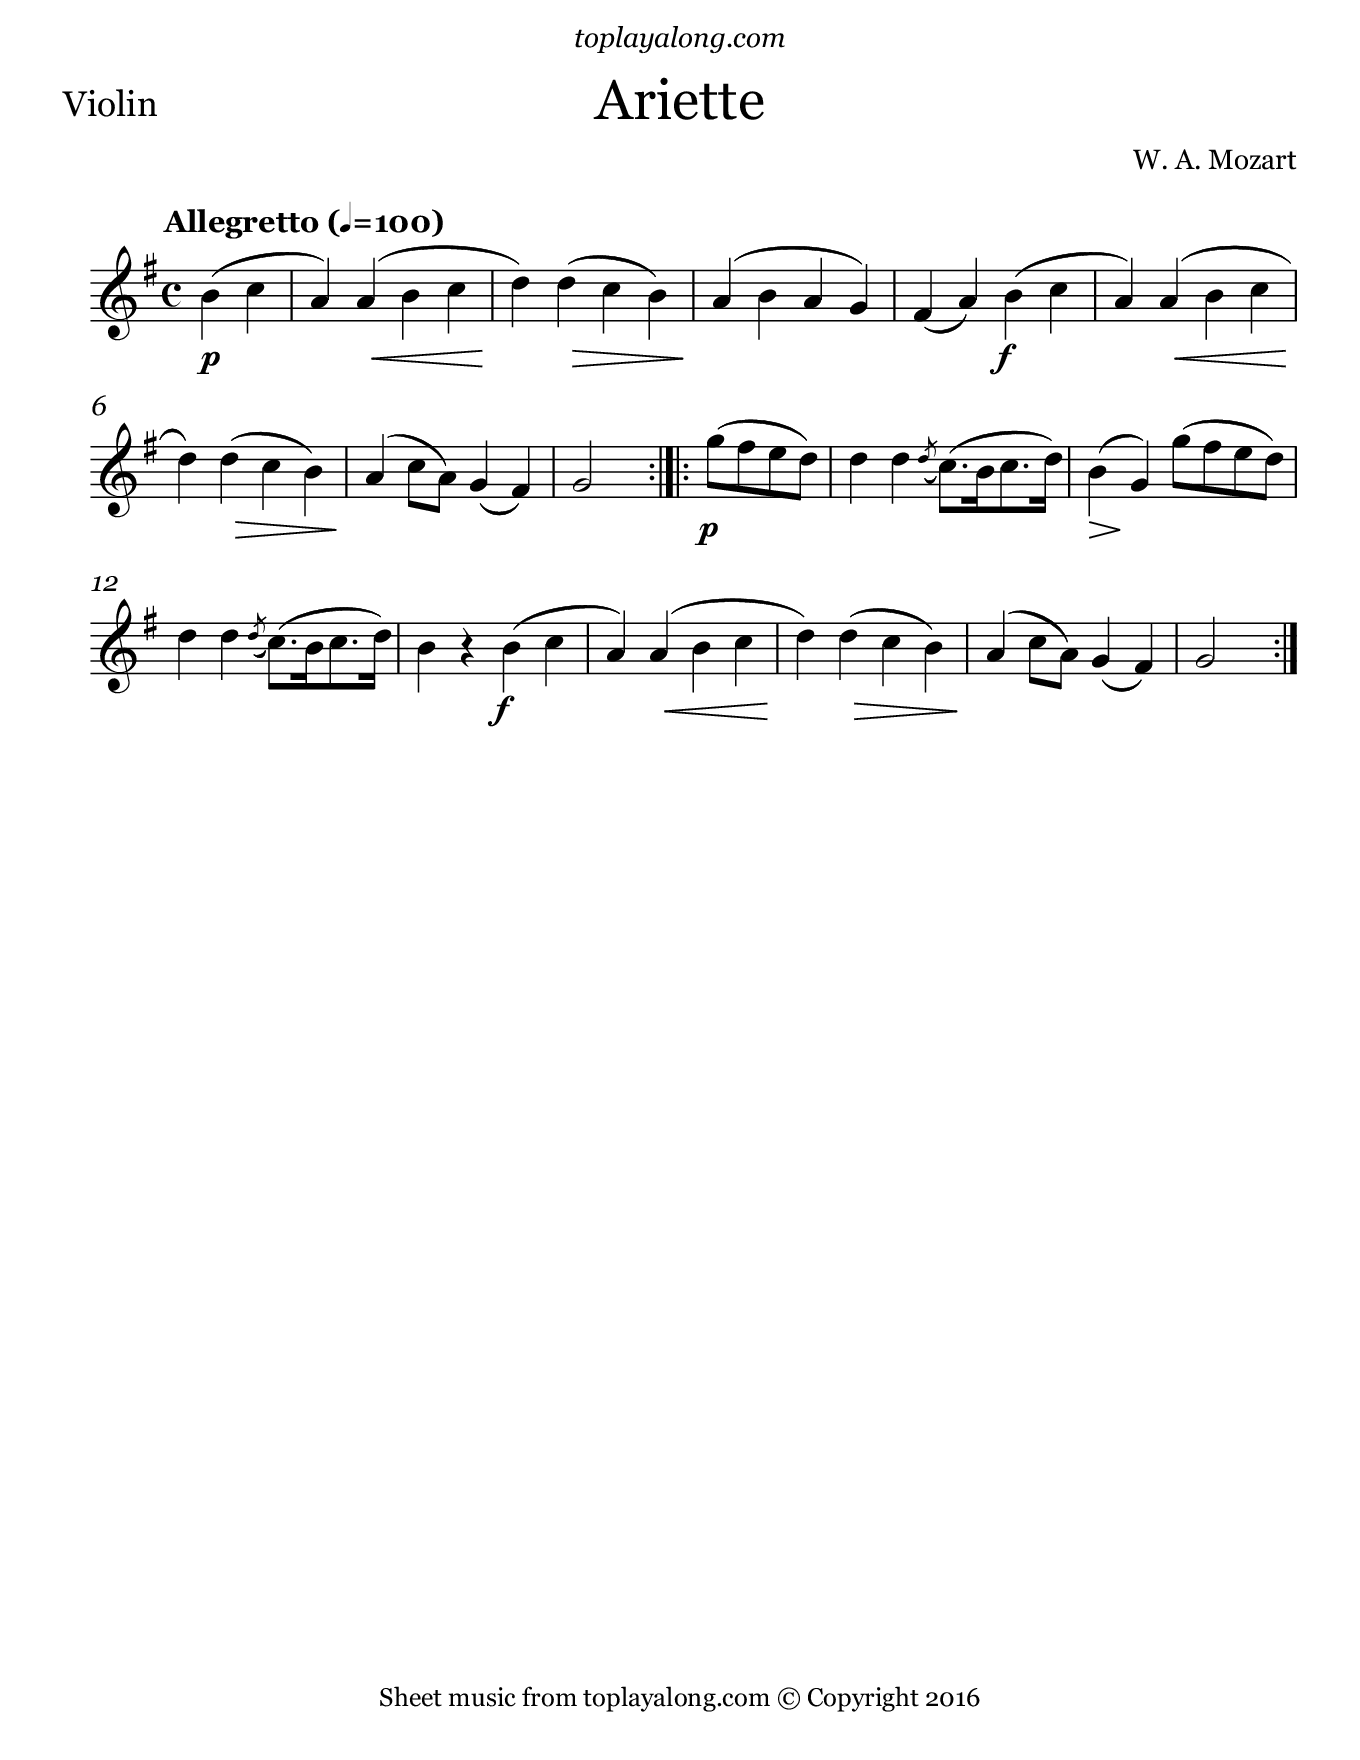 Ariette by Mozart. Sheet music for Violin, page 1.